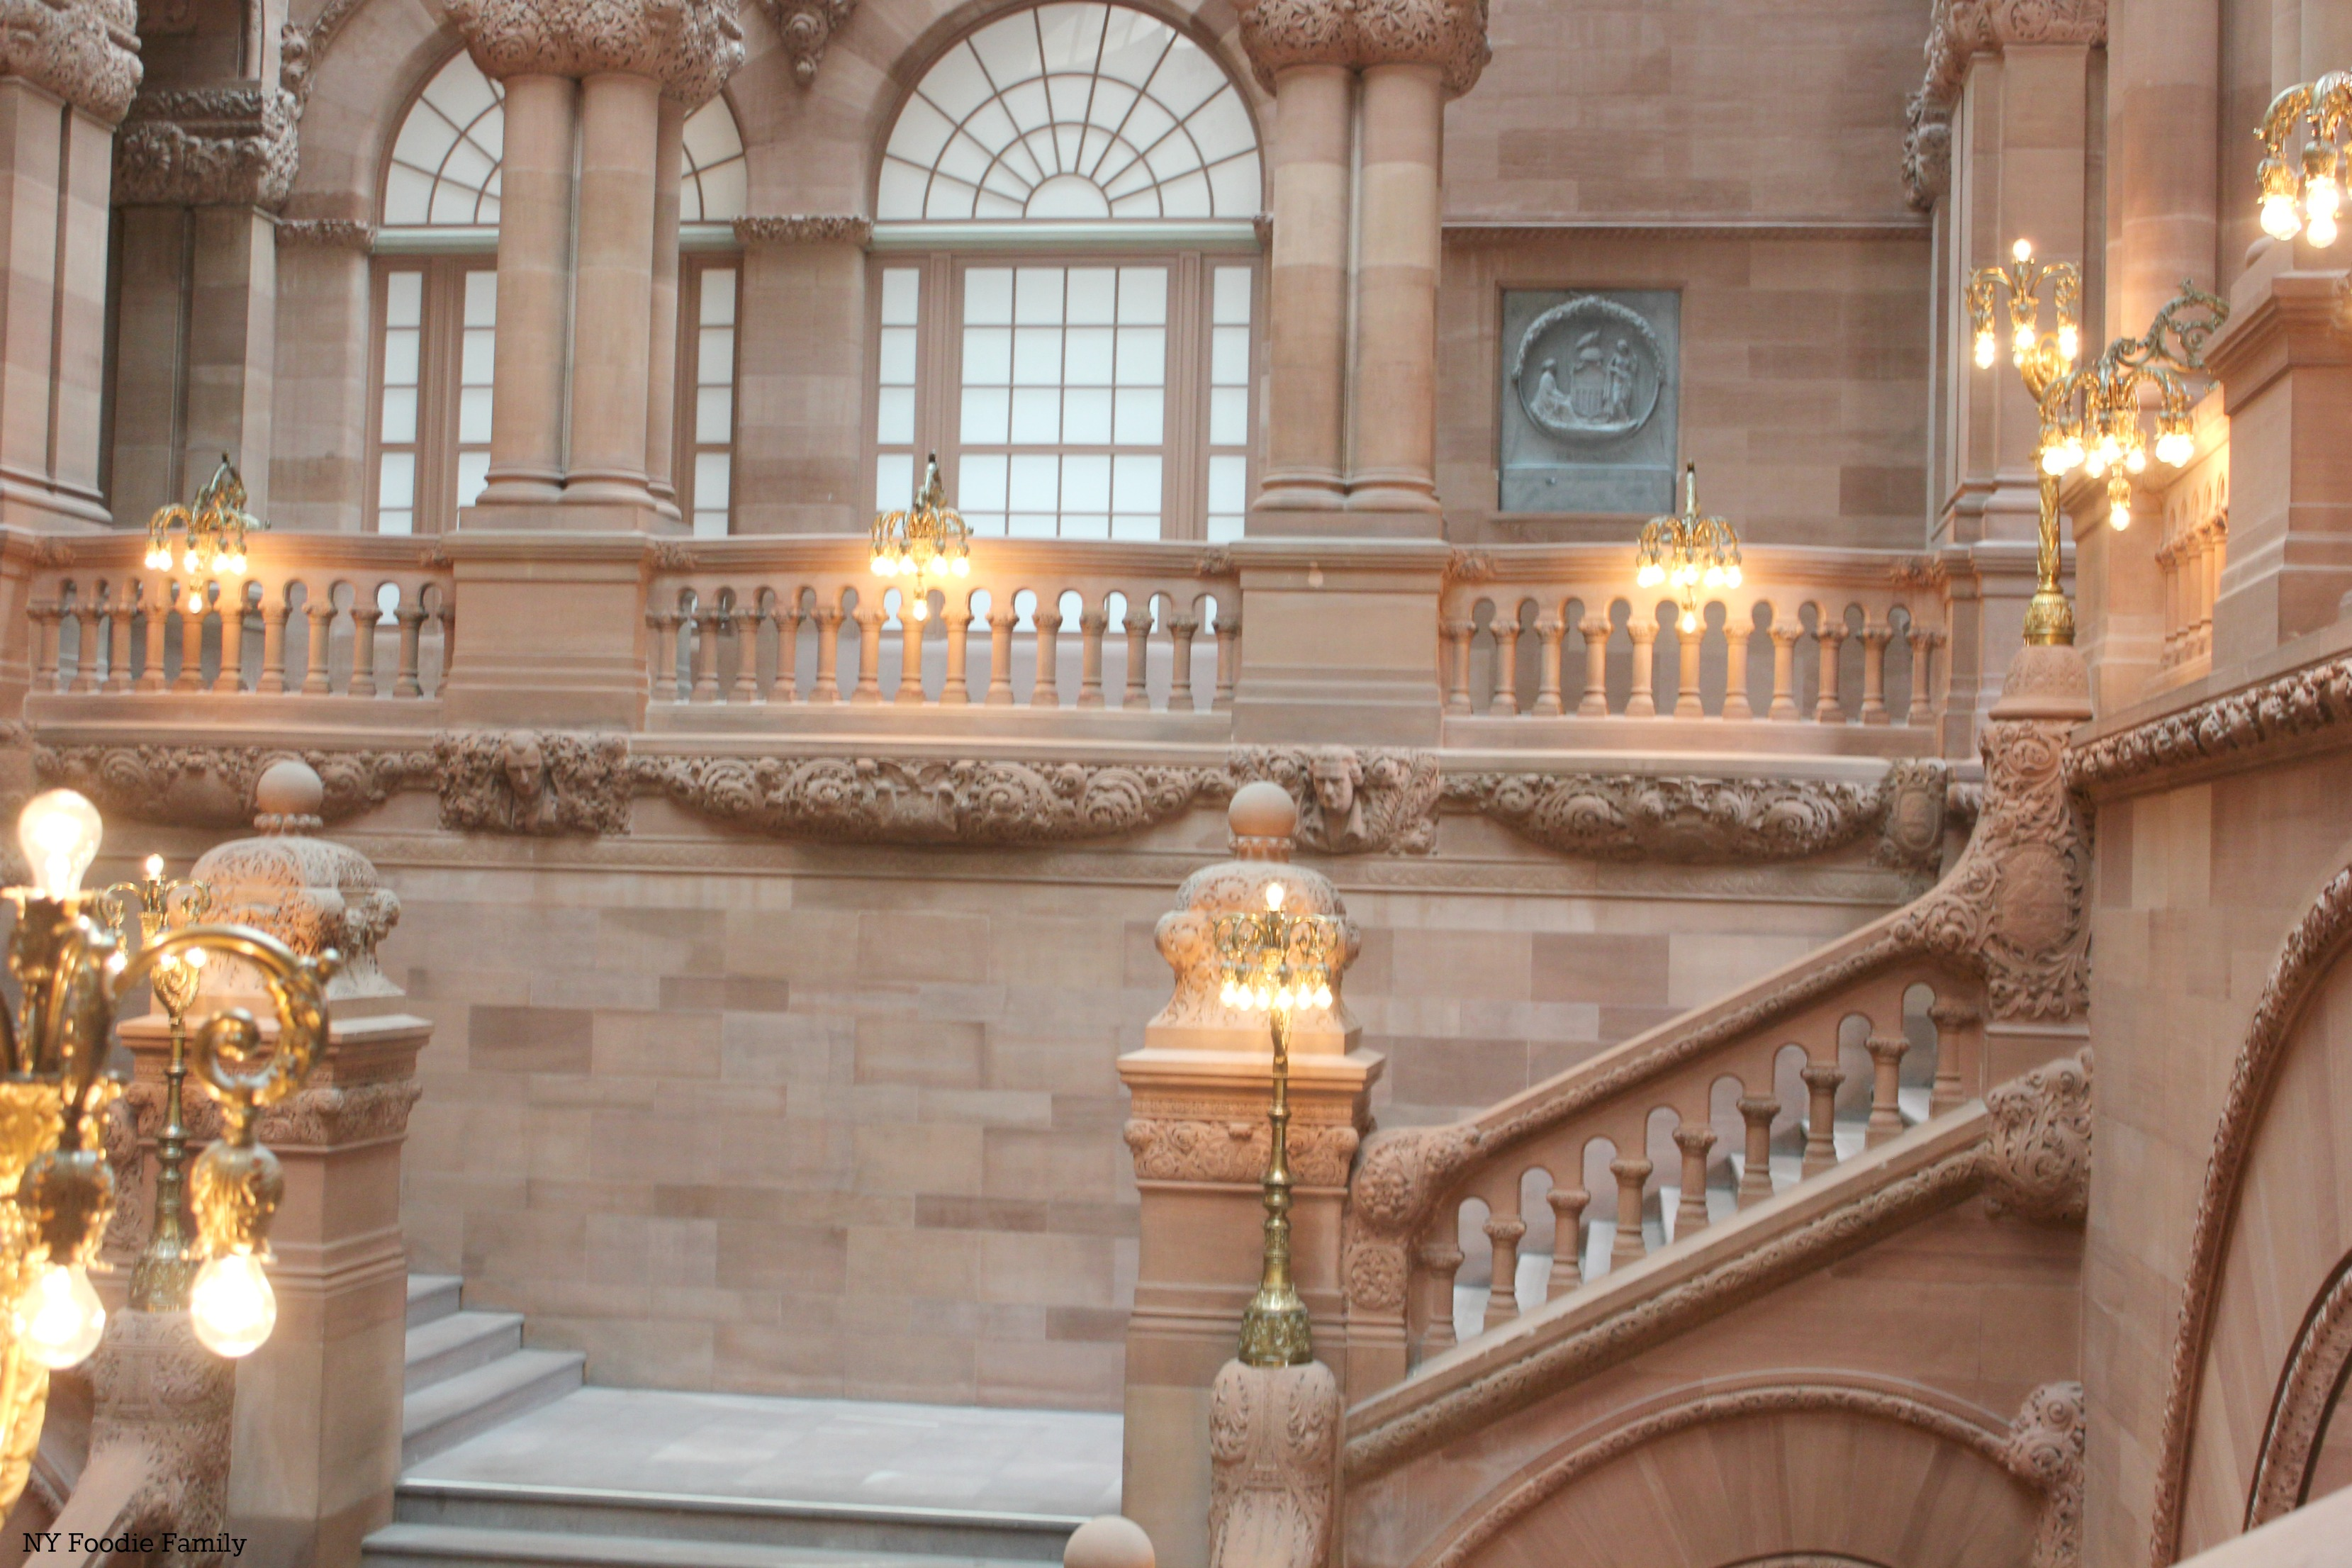 New york albany county albany 12224 - My Favorite Part Of The Tour Was Seeing The Staircases The Capitol Has Three Major Staircases That Are The Most Beautiful That I Think I Ve Ever Seen